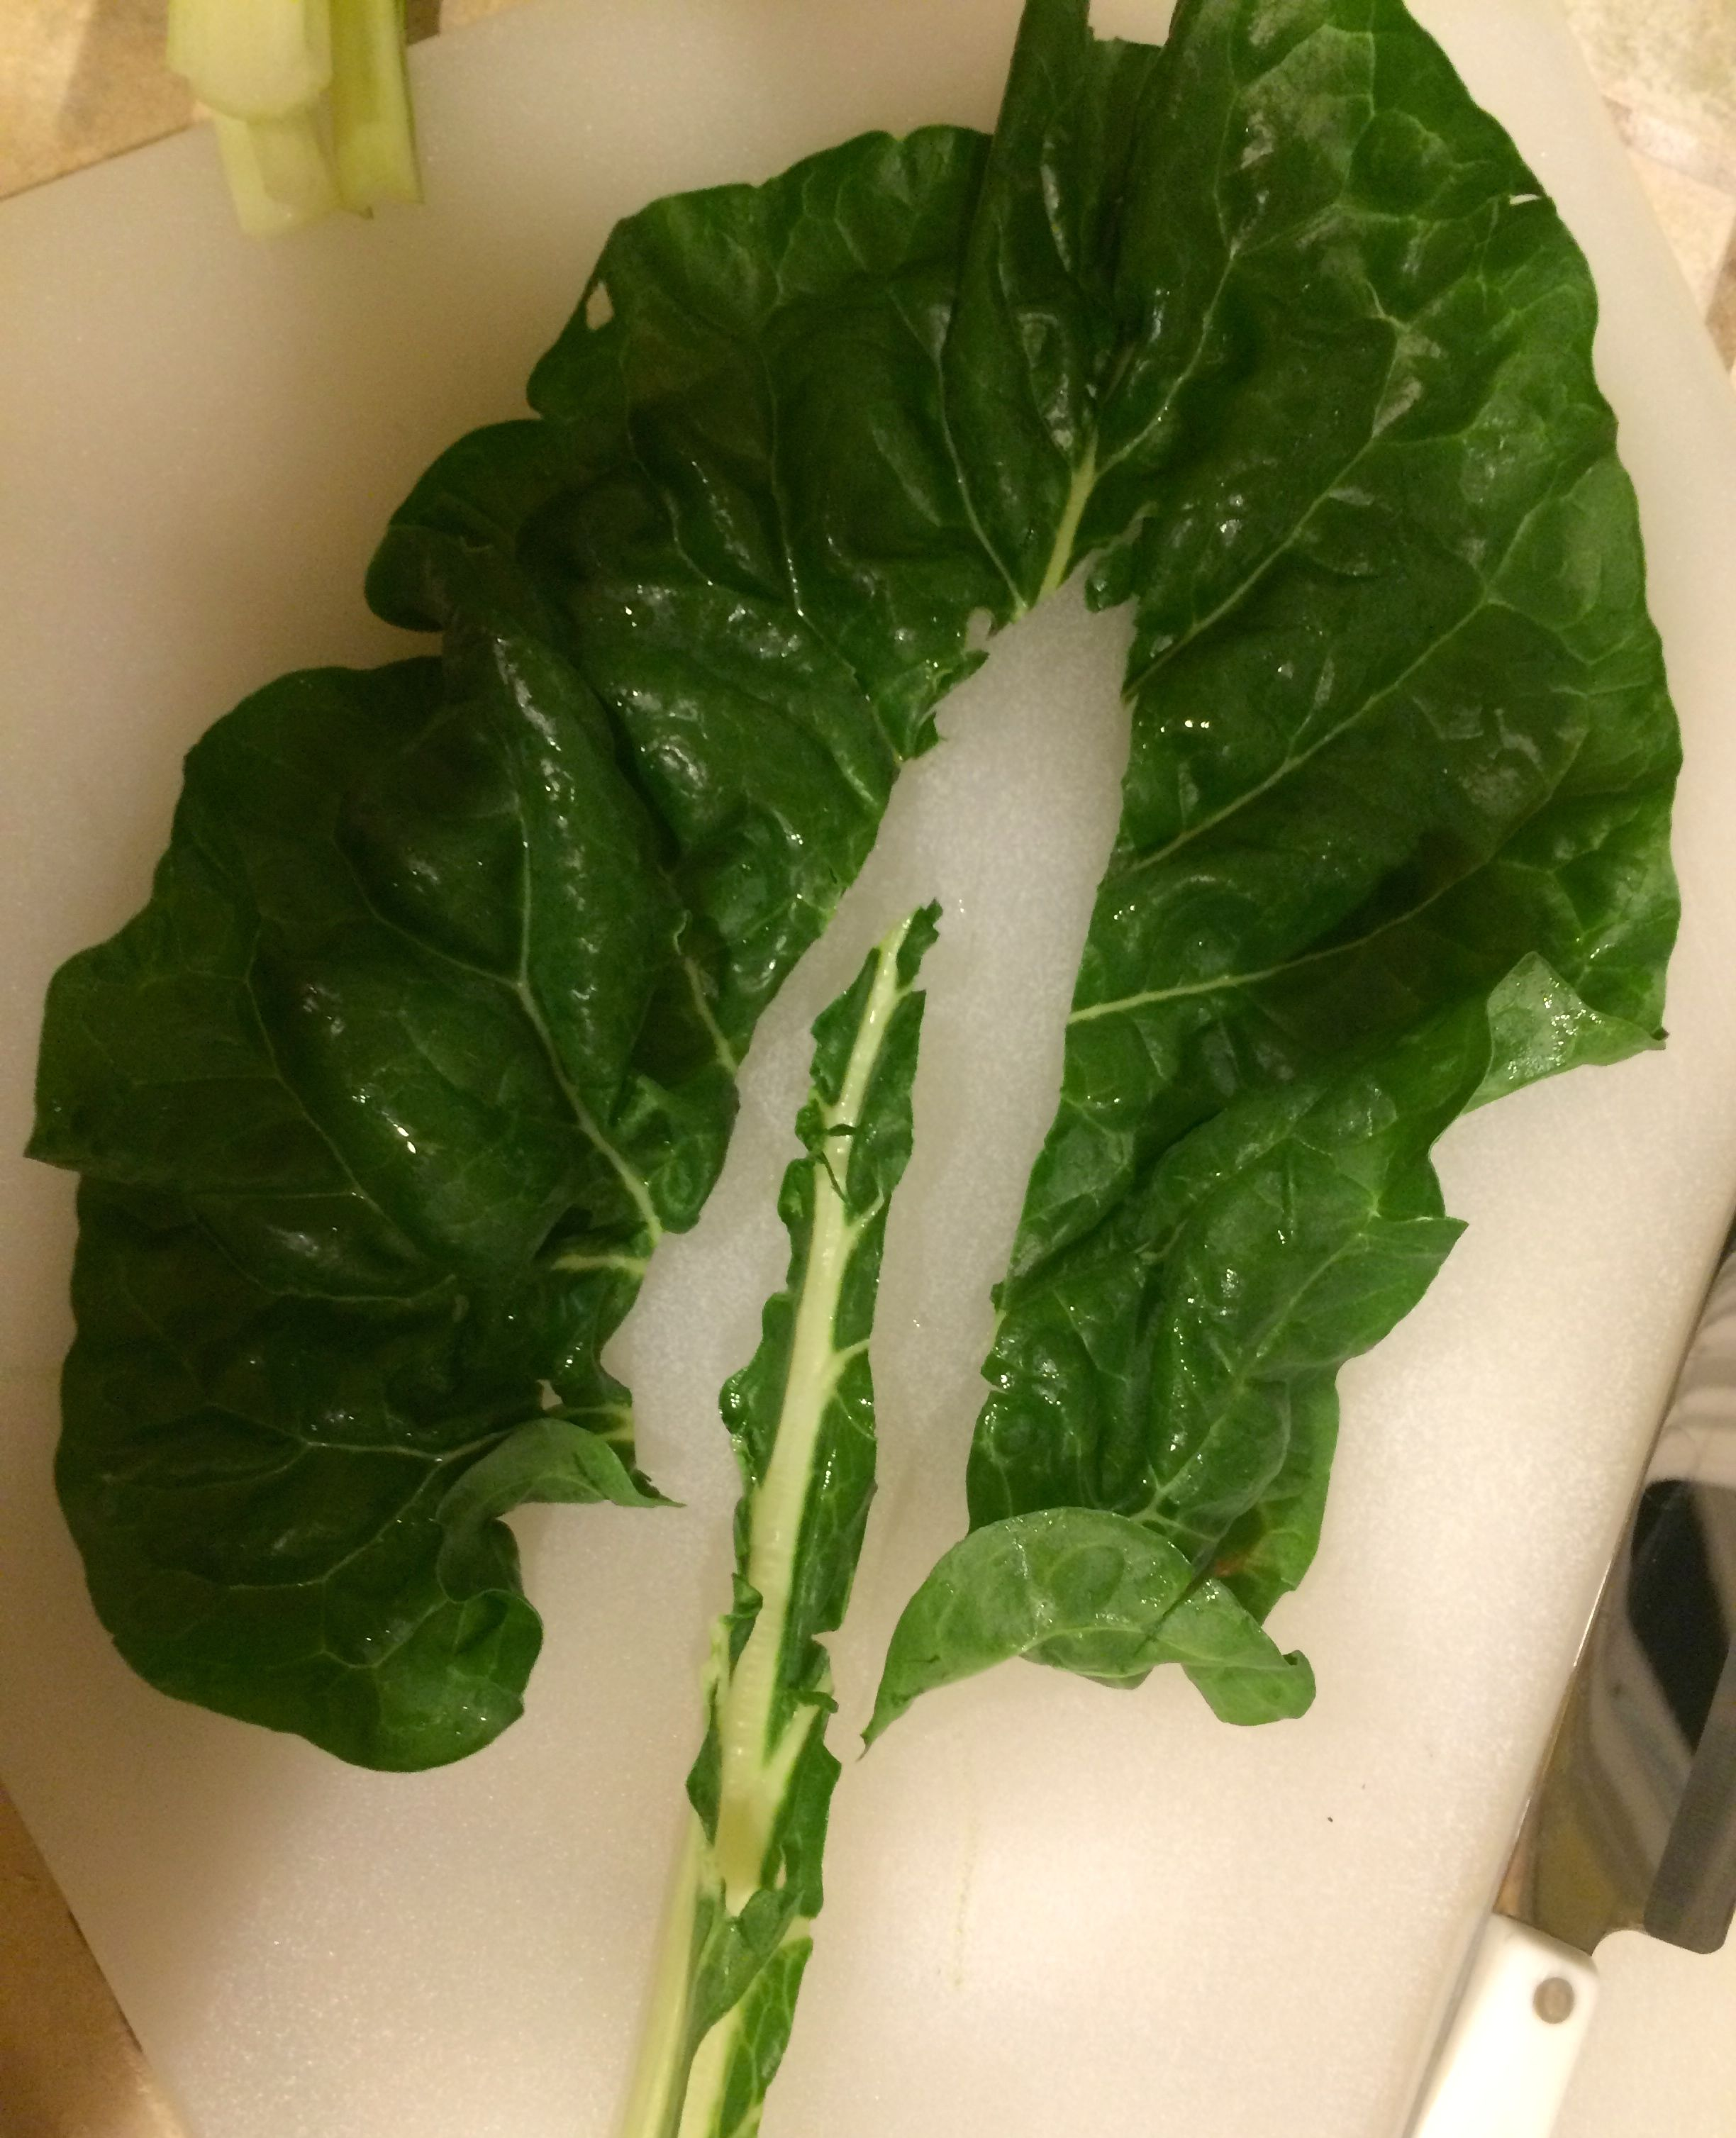 Swiss Chard leaf with the stem removed